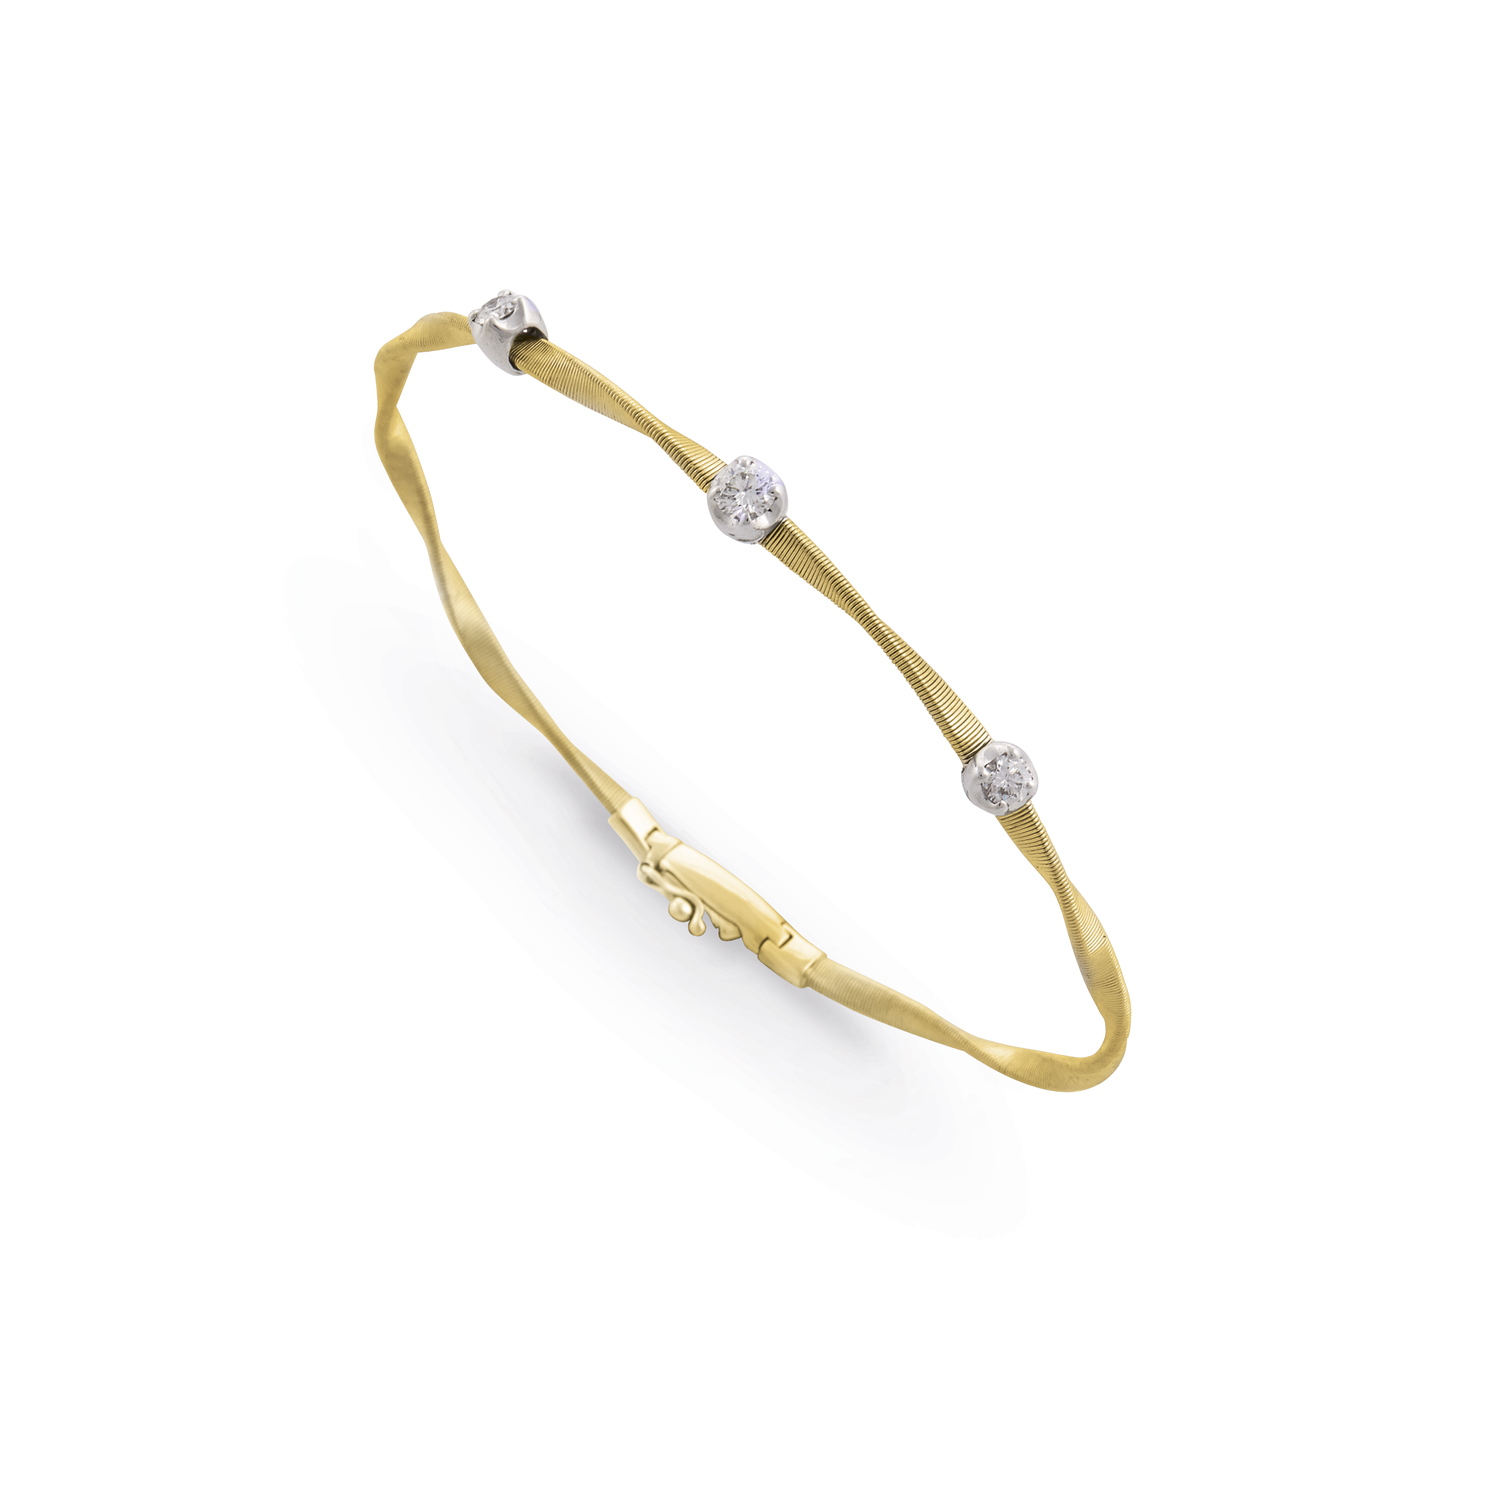 Marco Bicego Marrakech Gold Single-Strand Diamond Bracelet